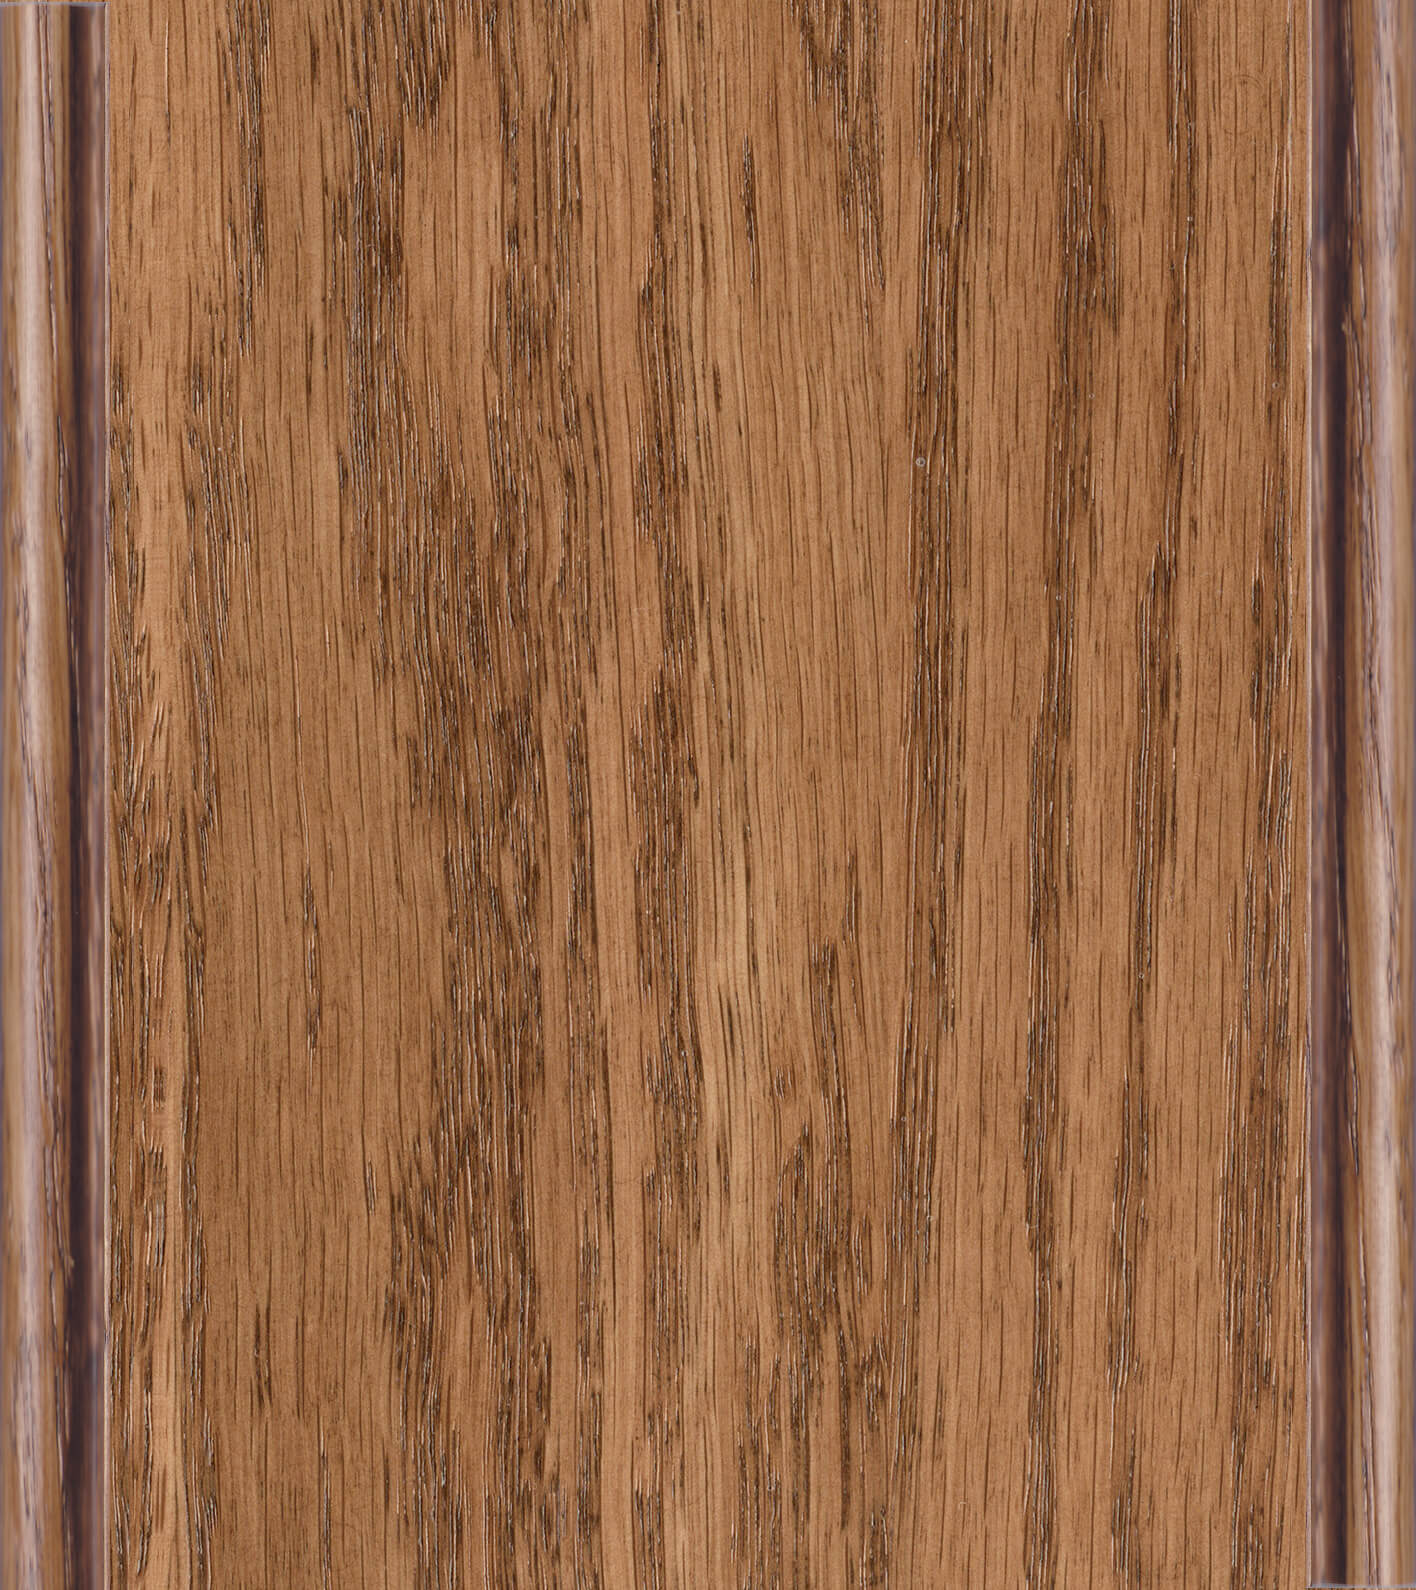 Clove Stain on Red Oak